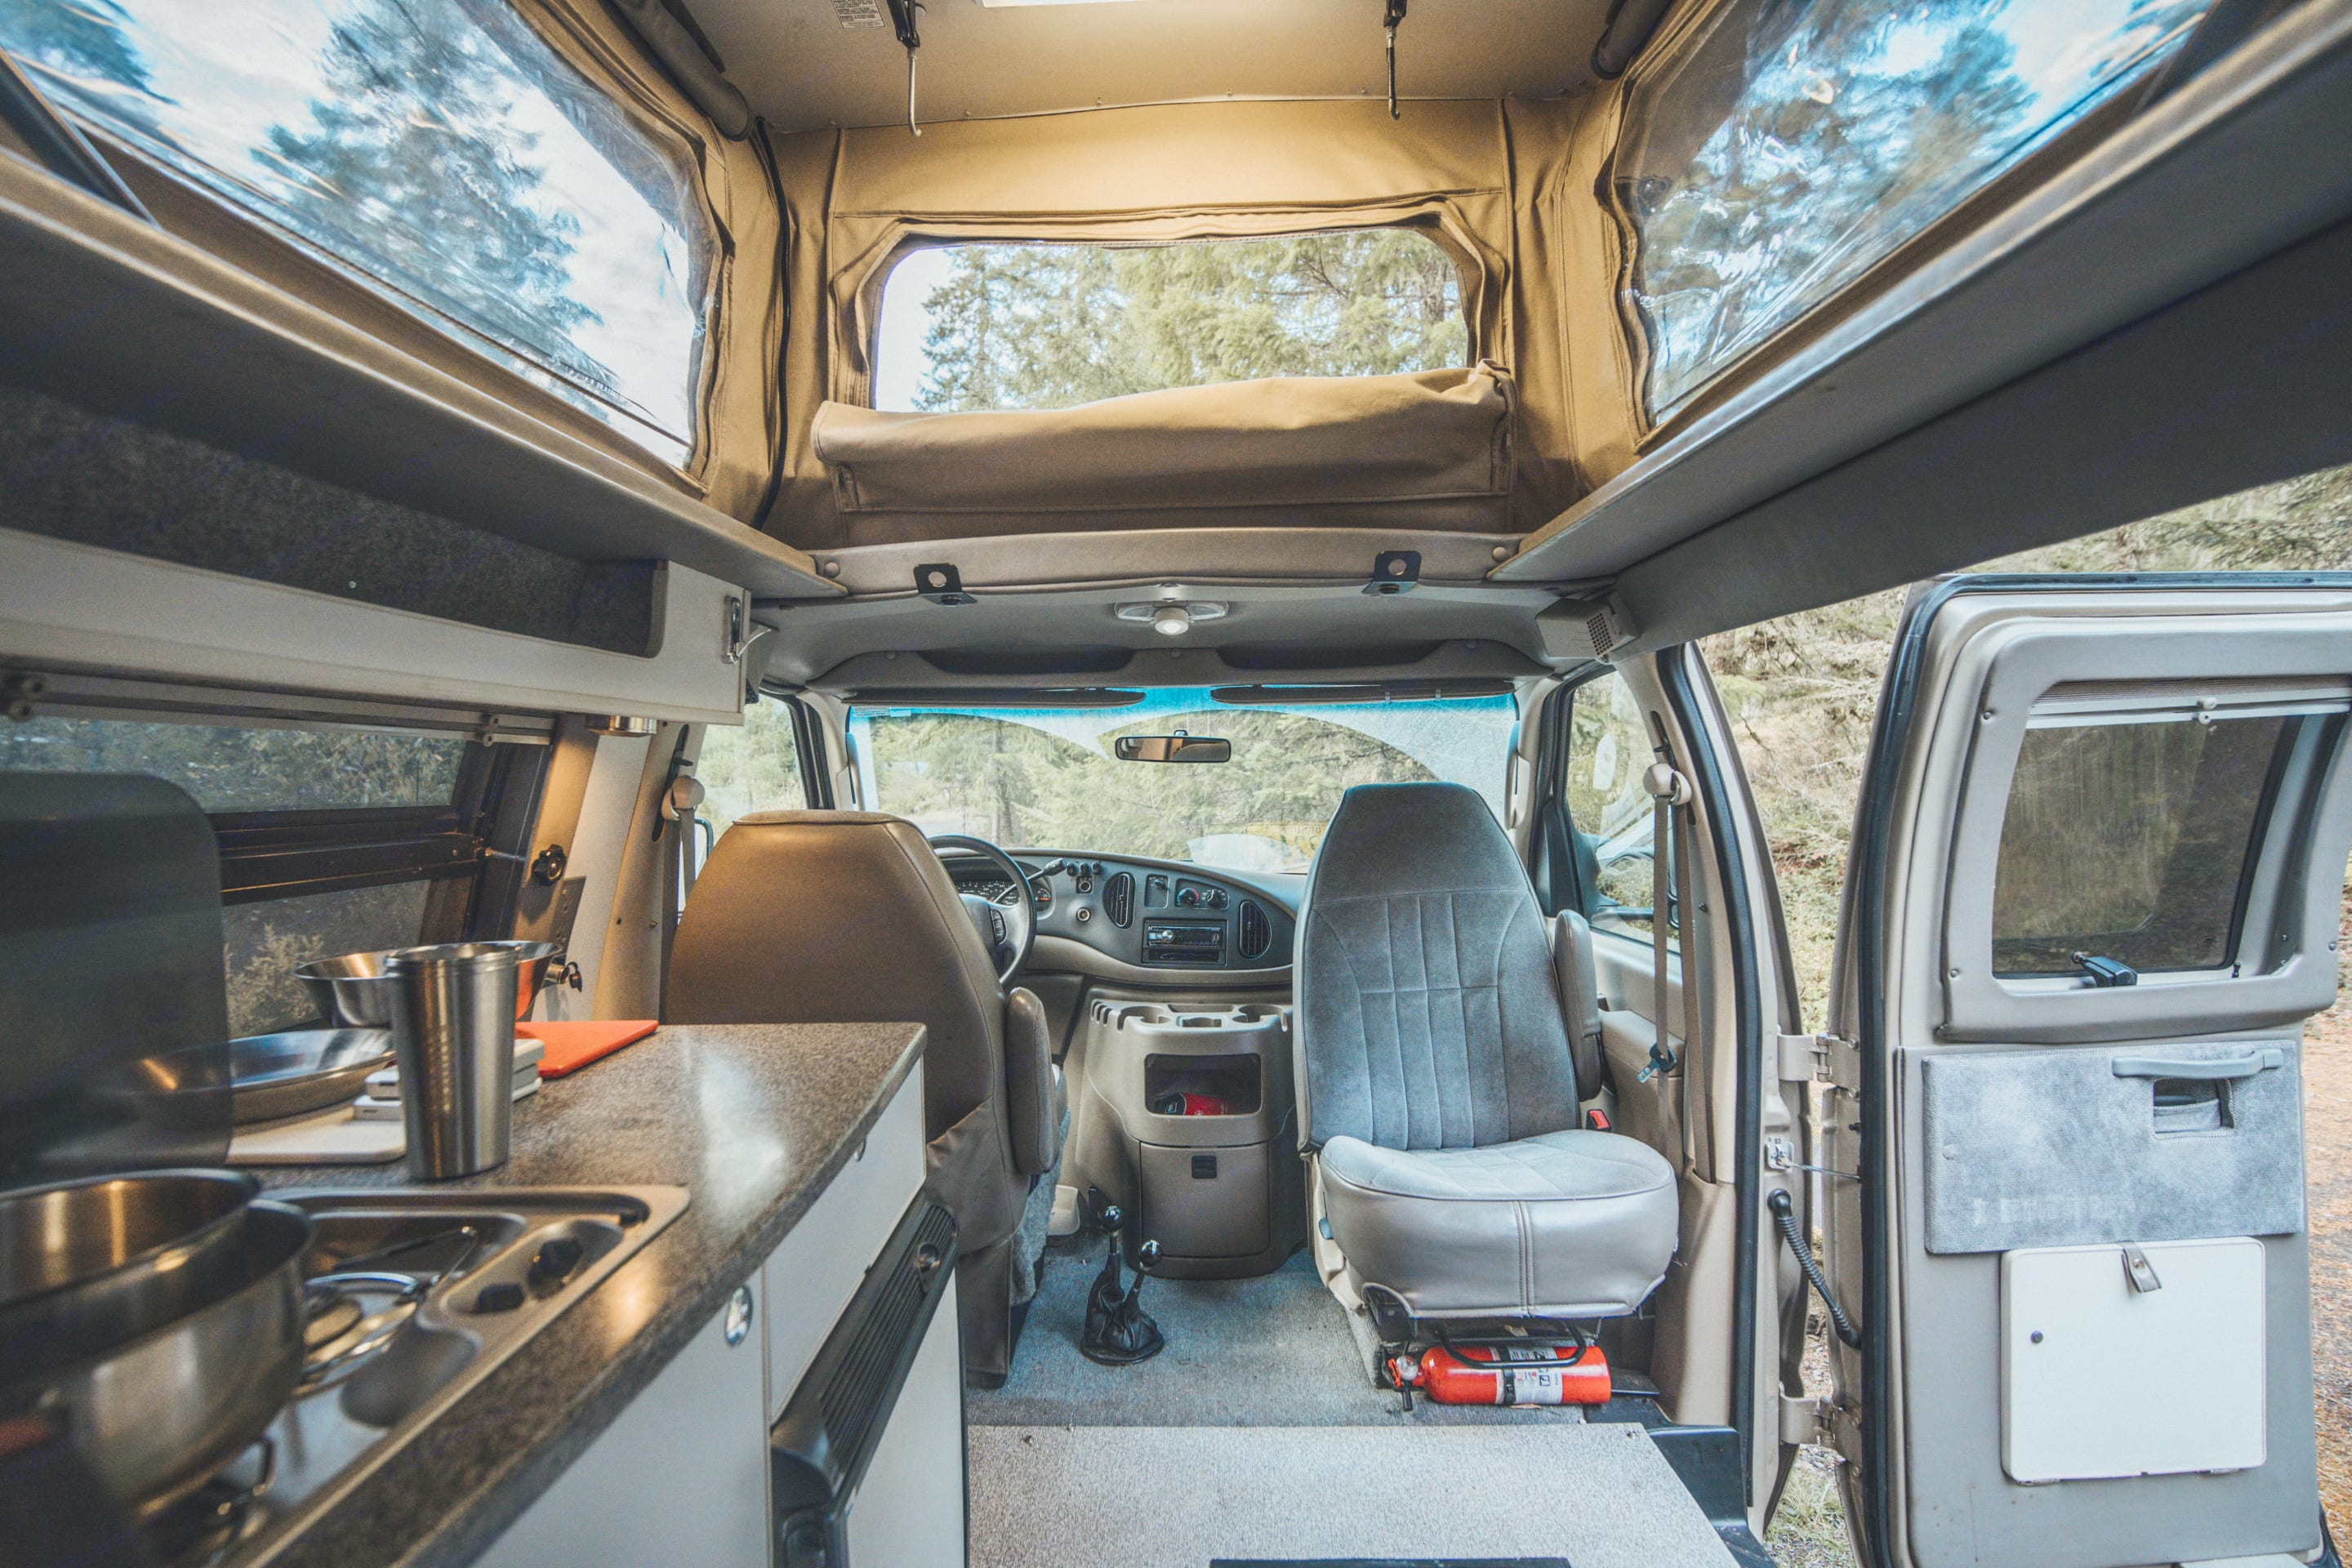 Full kitchen and front swivel seat makes for perfect hanging out zone.. Ford Econoline 2008